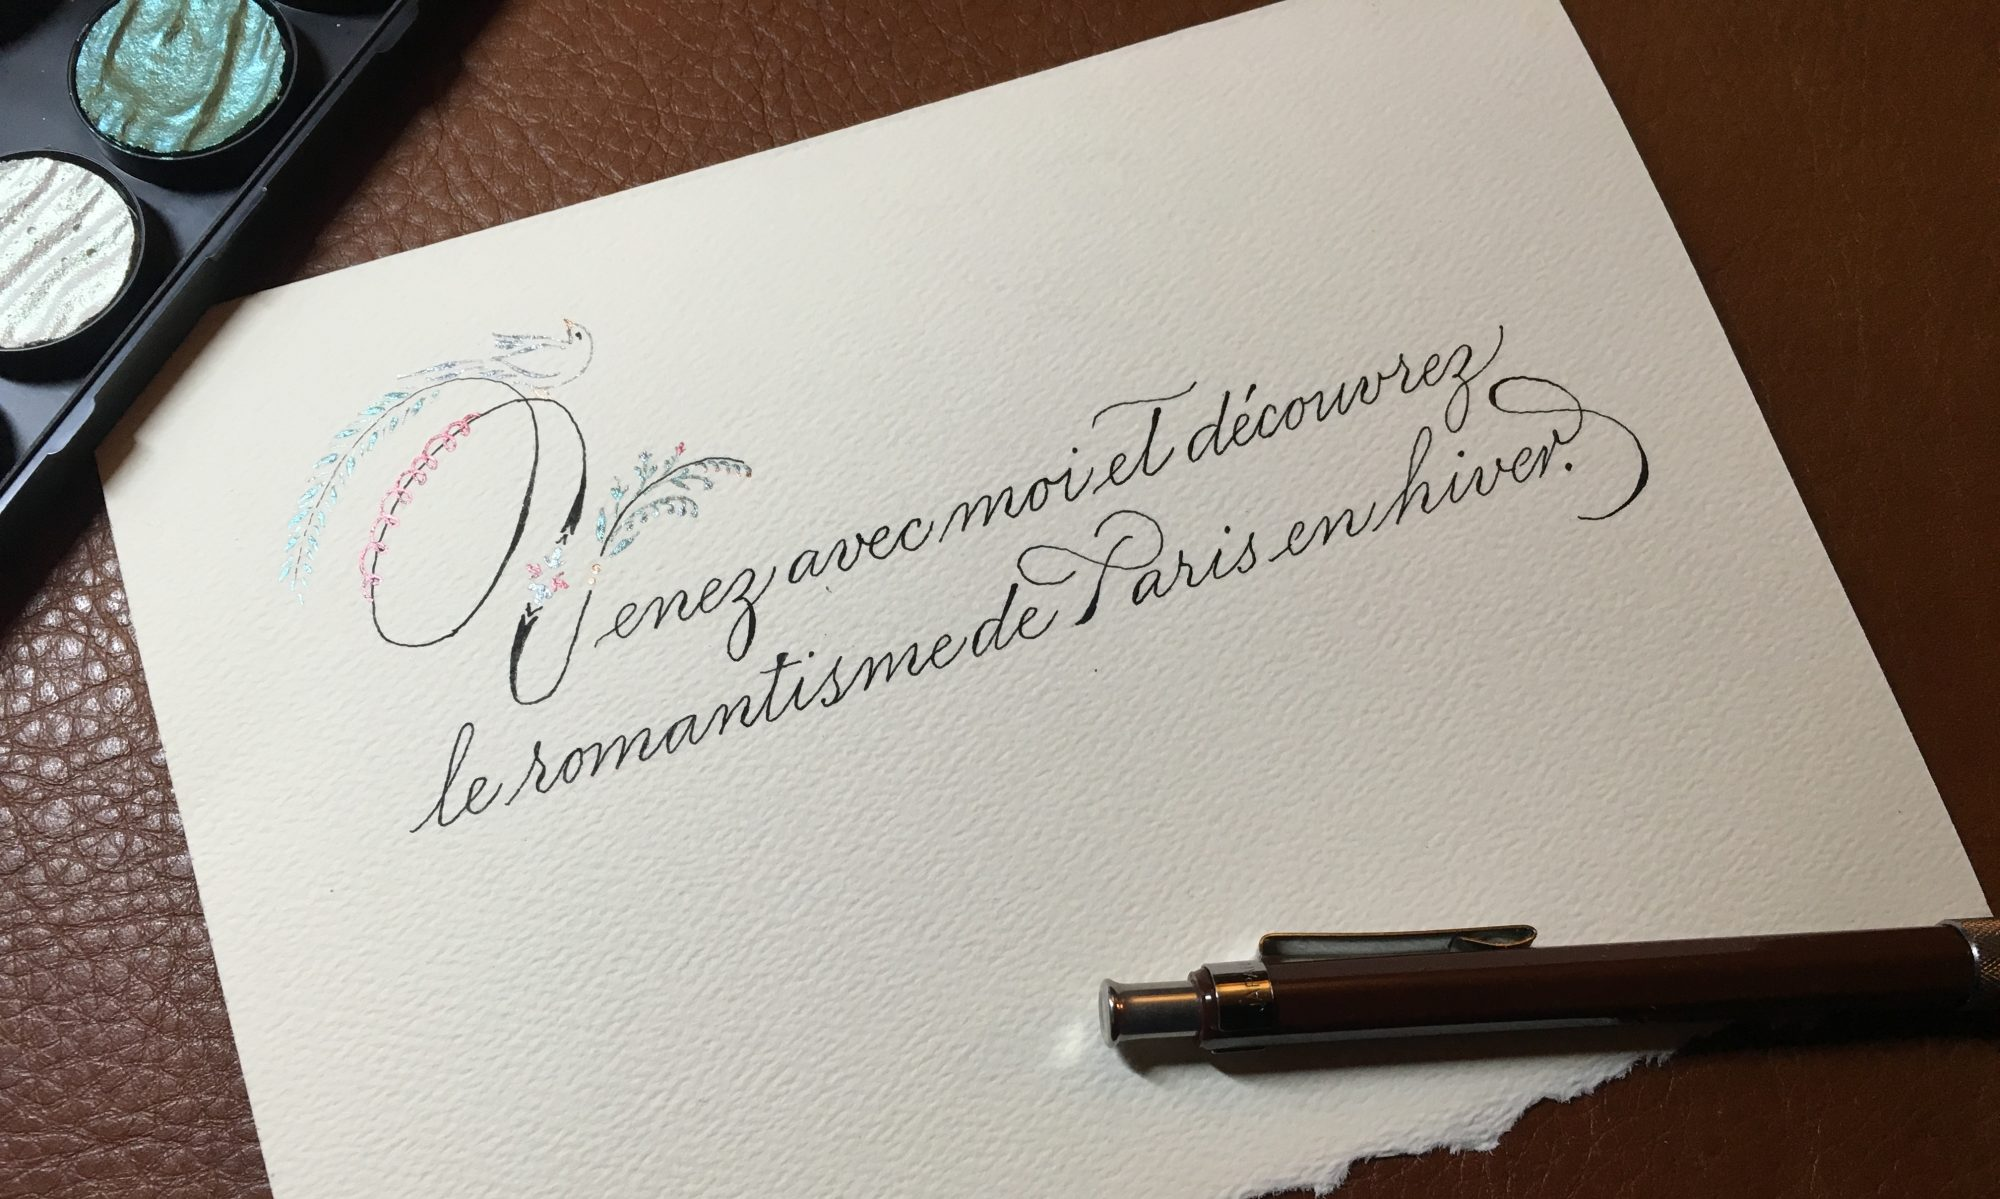 Haley Ping, Calligrapher & Artist